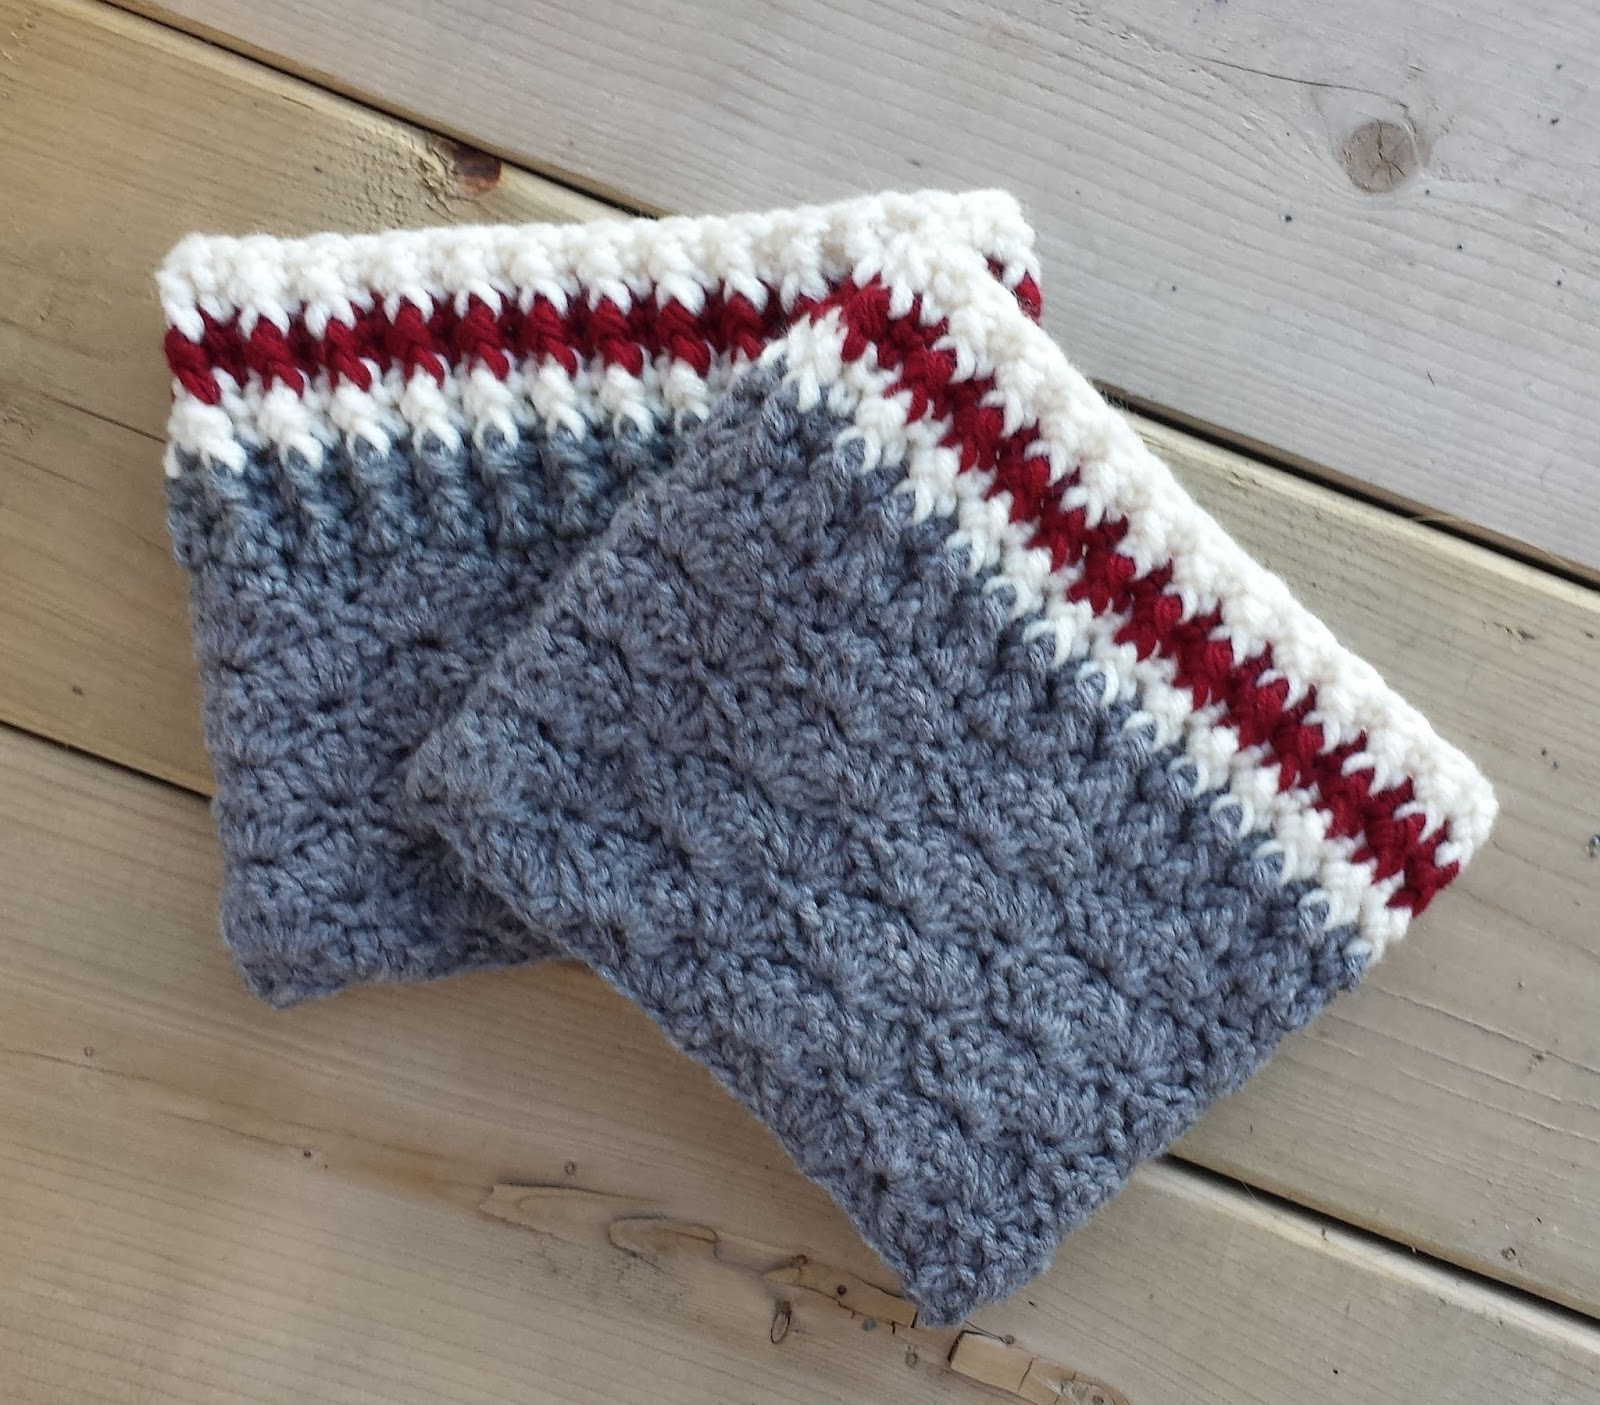 47 Crochet Boot Cuffs Pattern - The Funky Stitch